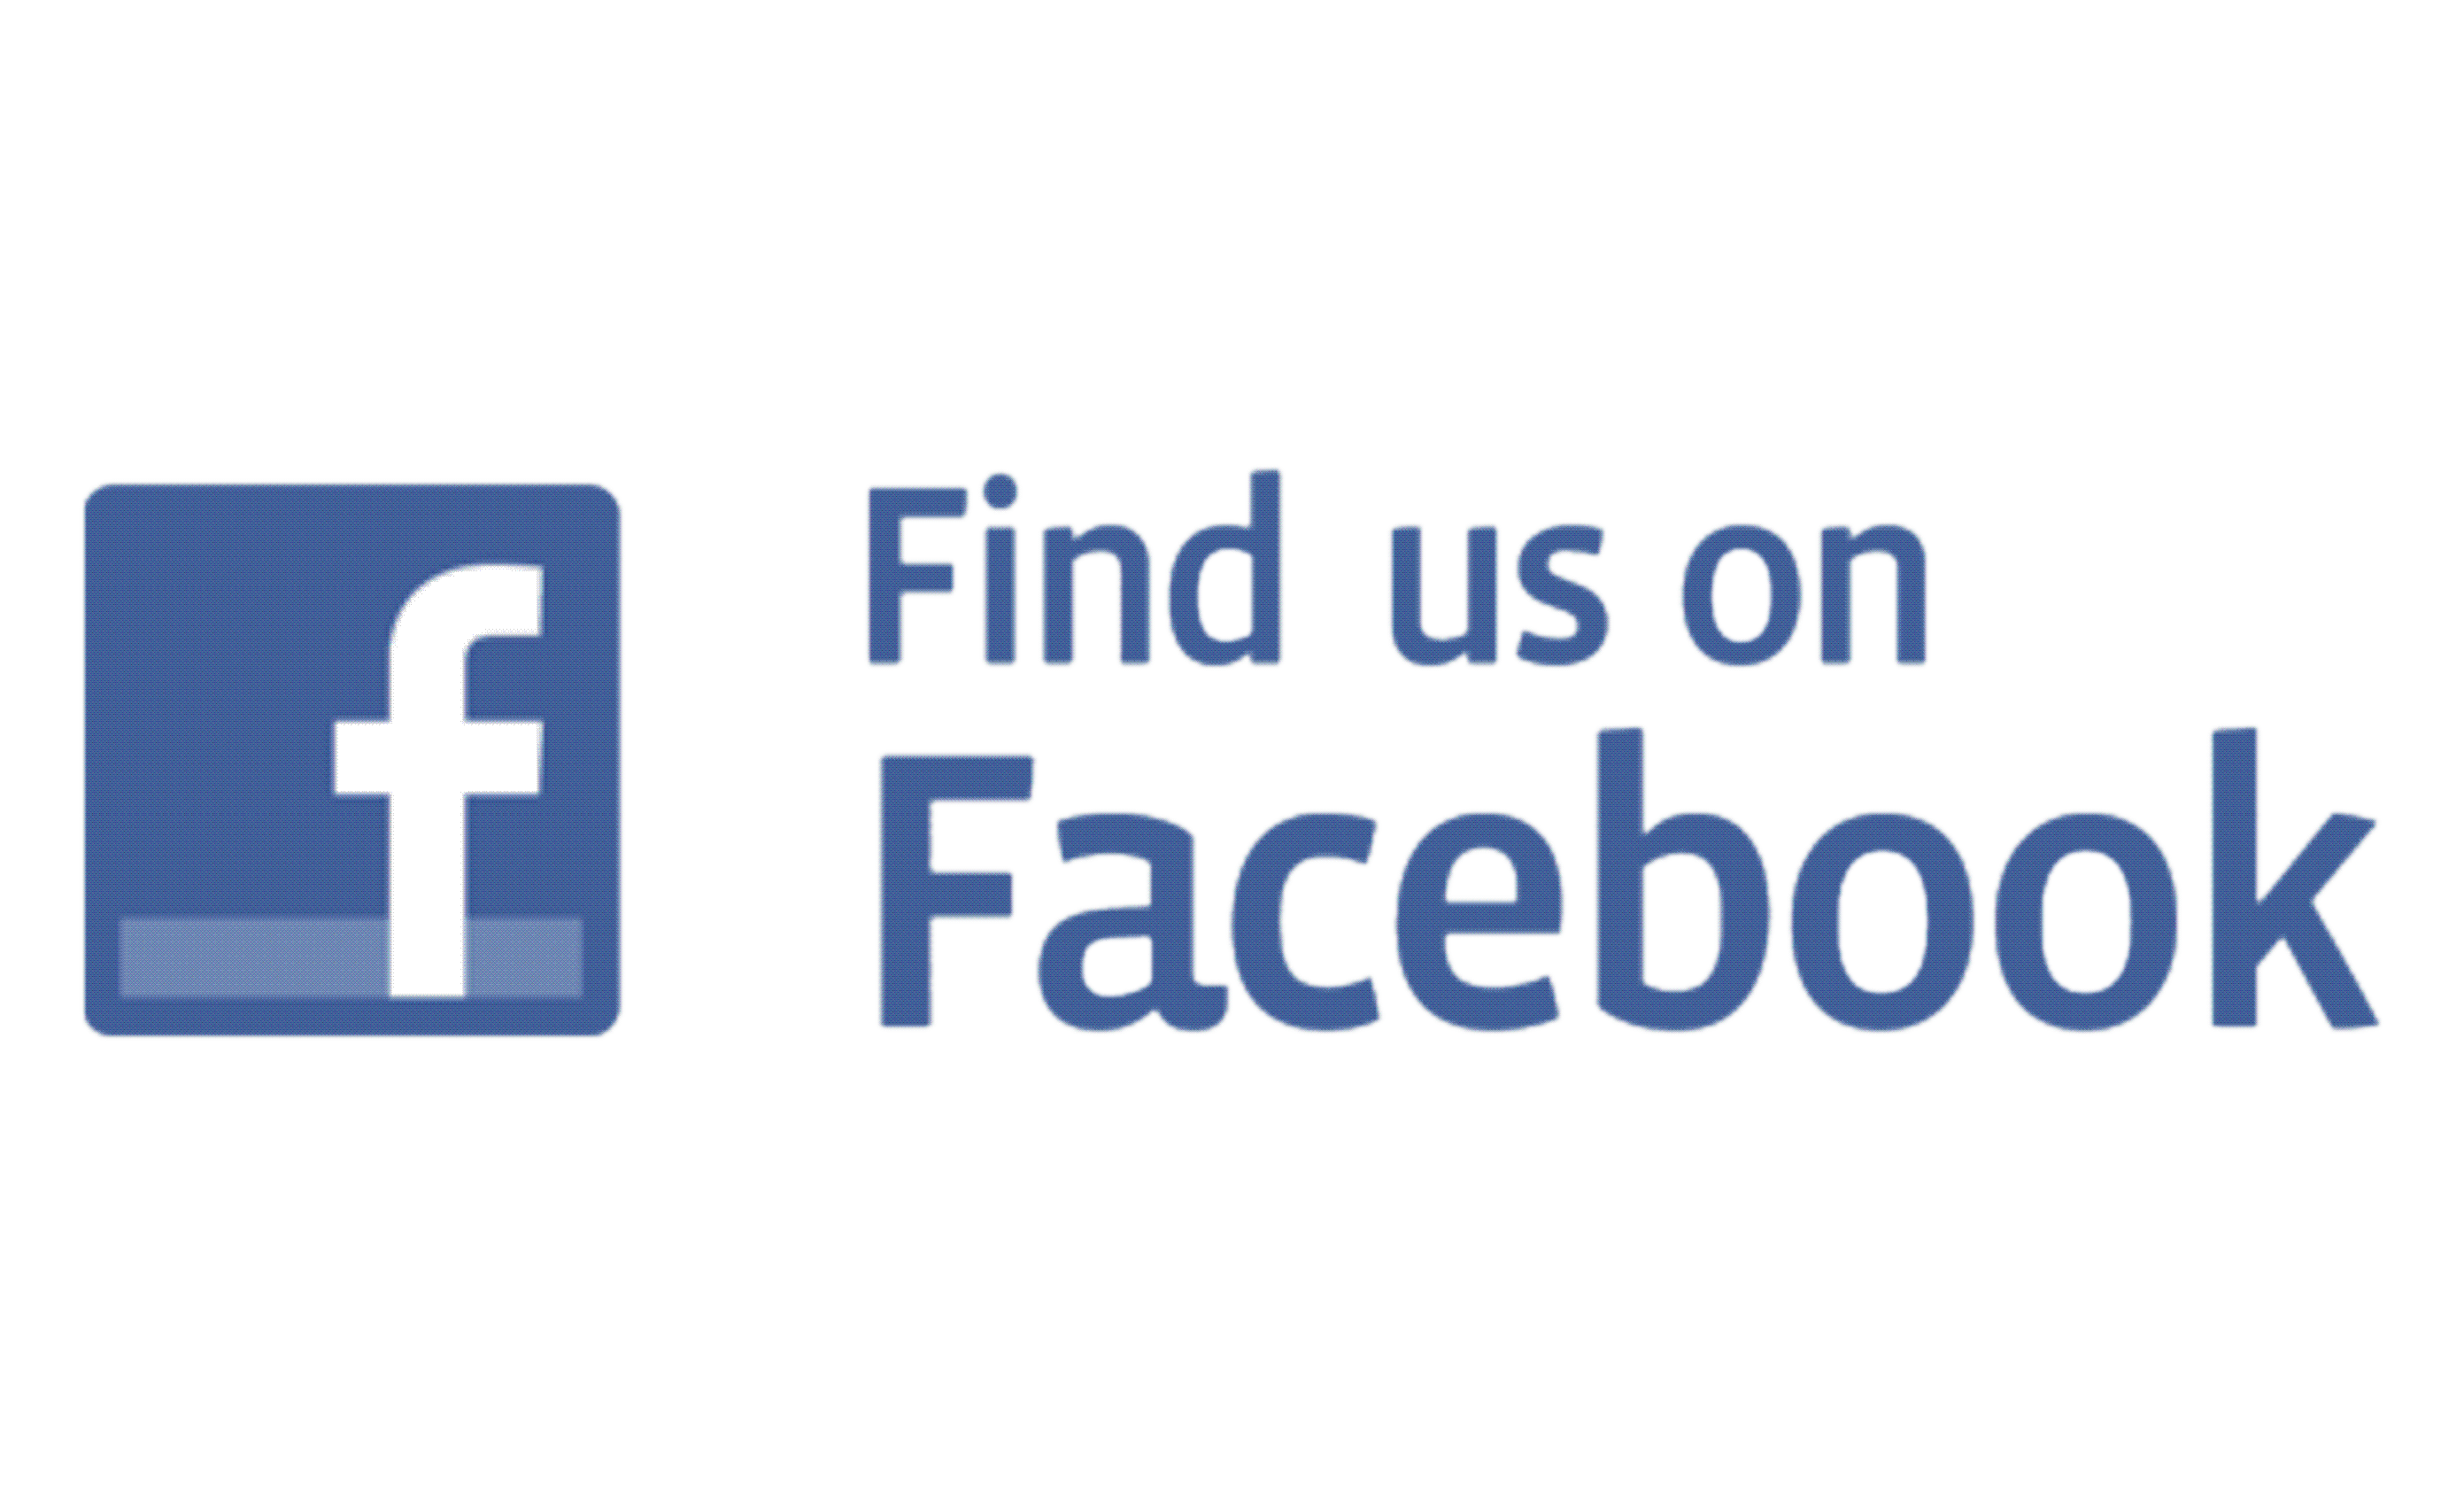 Find Us On Facebook Transparent PNG